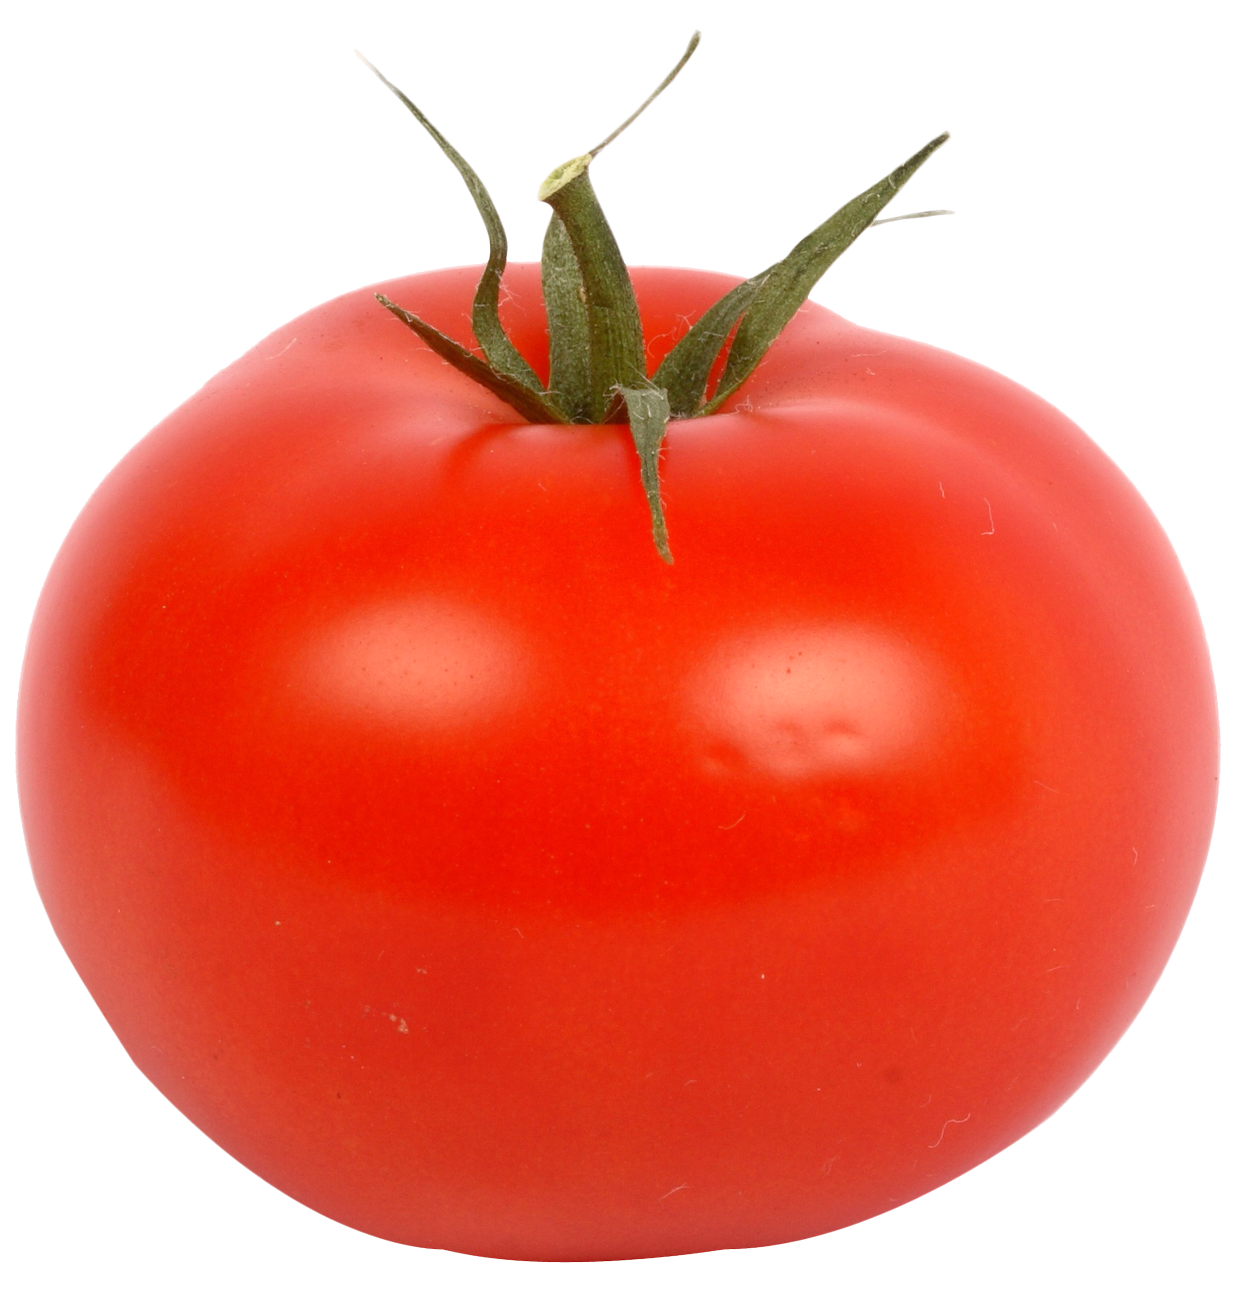 Tomato slices png. Images pngpix fresh red